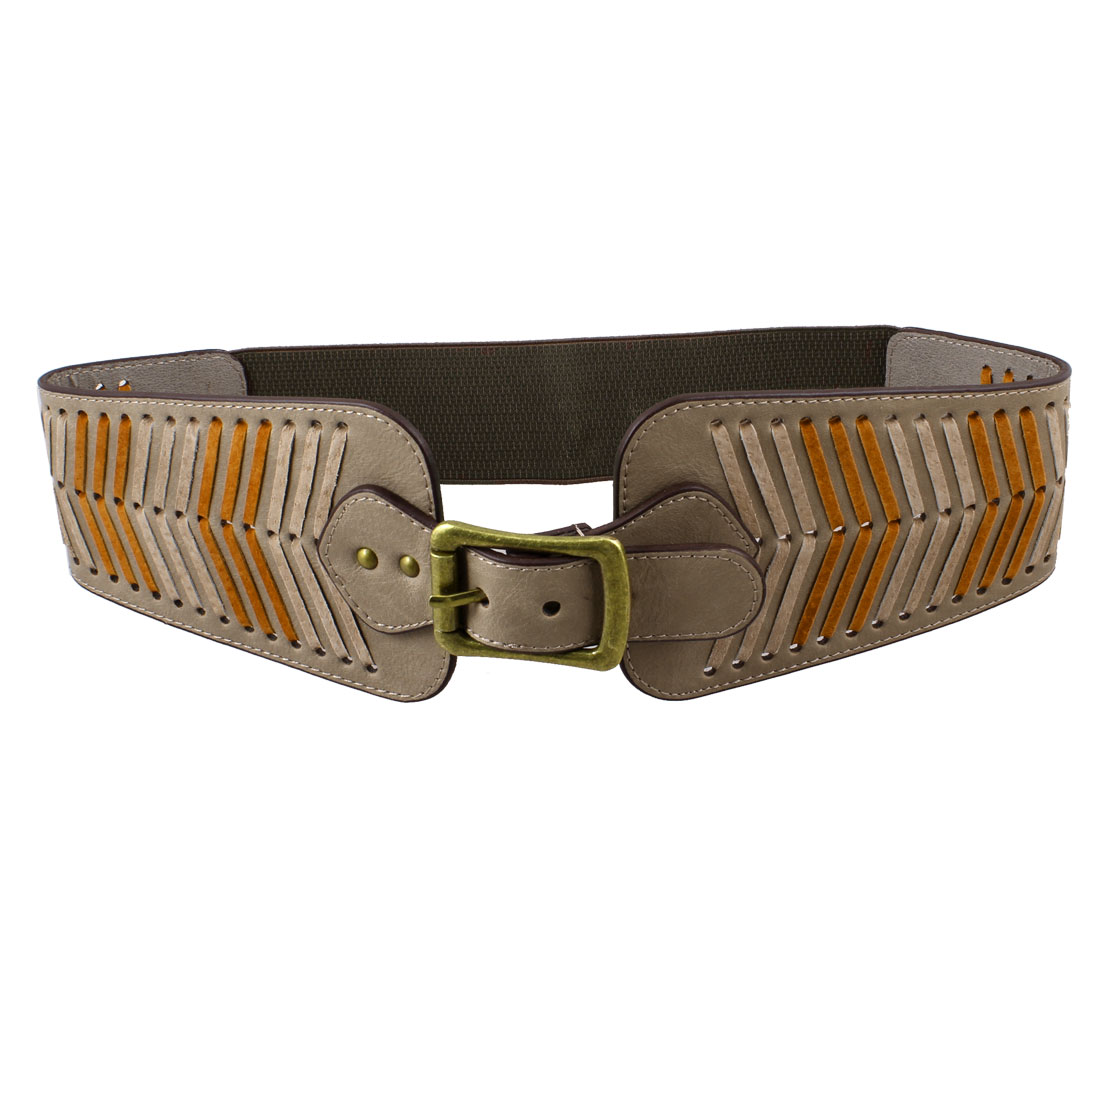 Lady Metal Single Pin Buckle Stretchy Band Waistbelt Cinch Belt Khaki